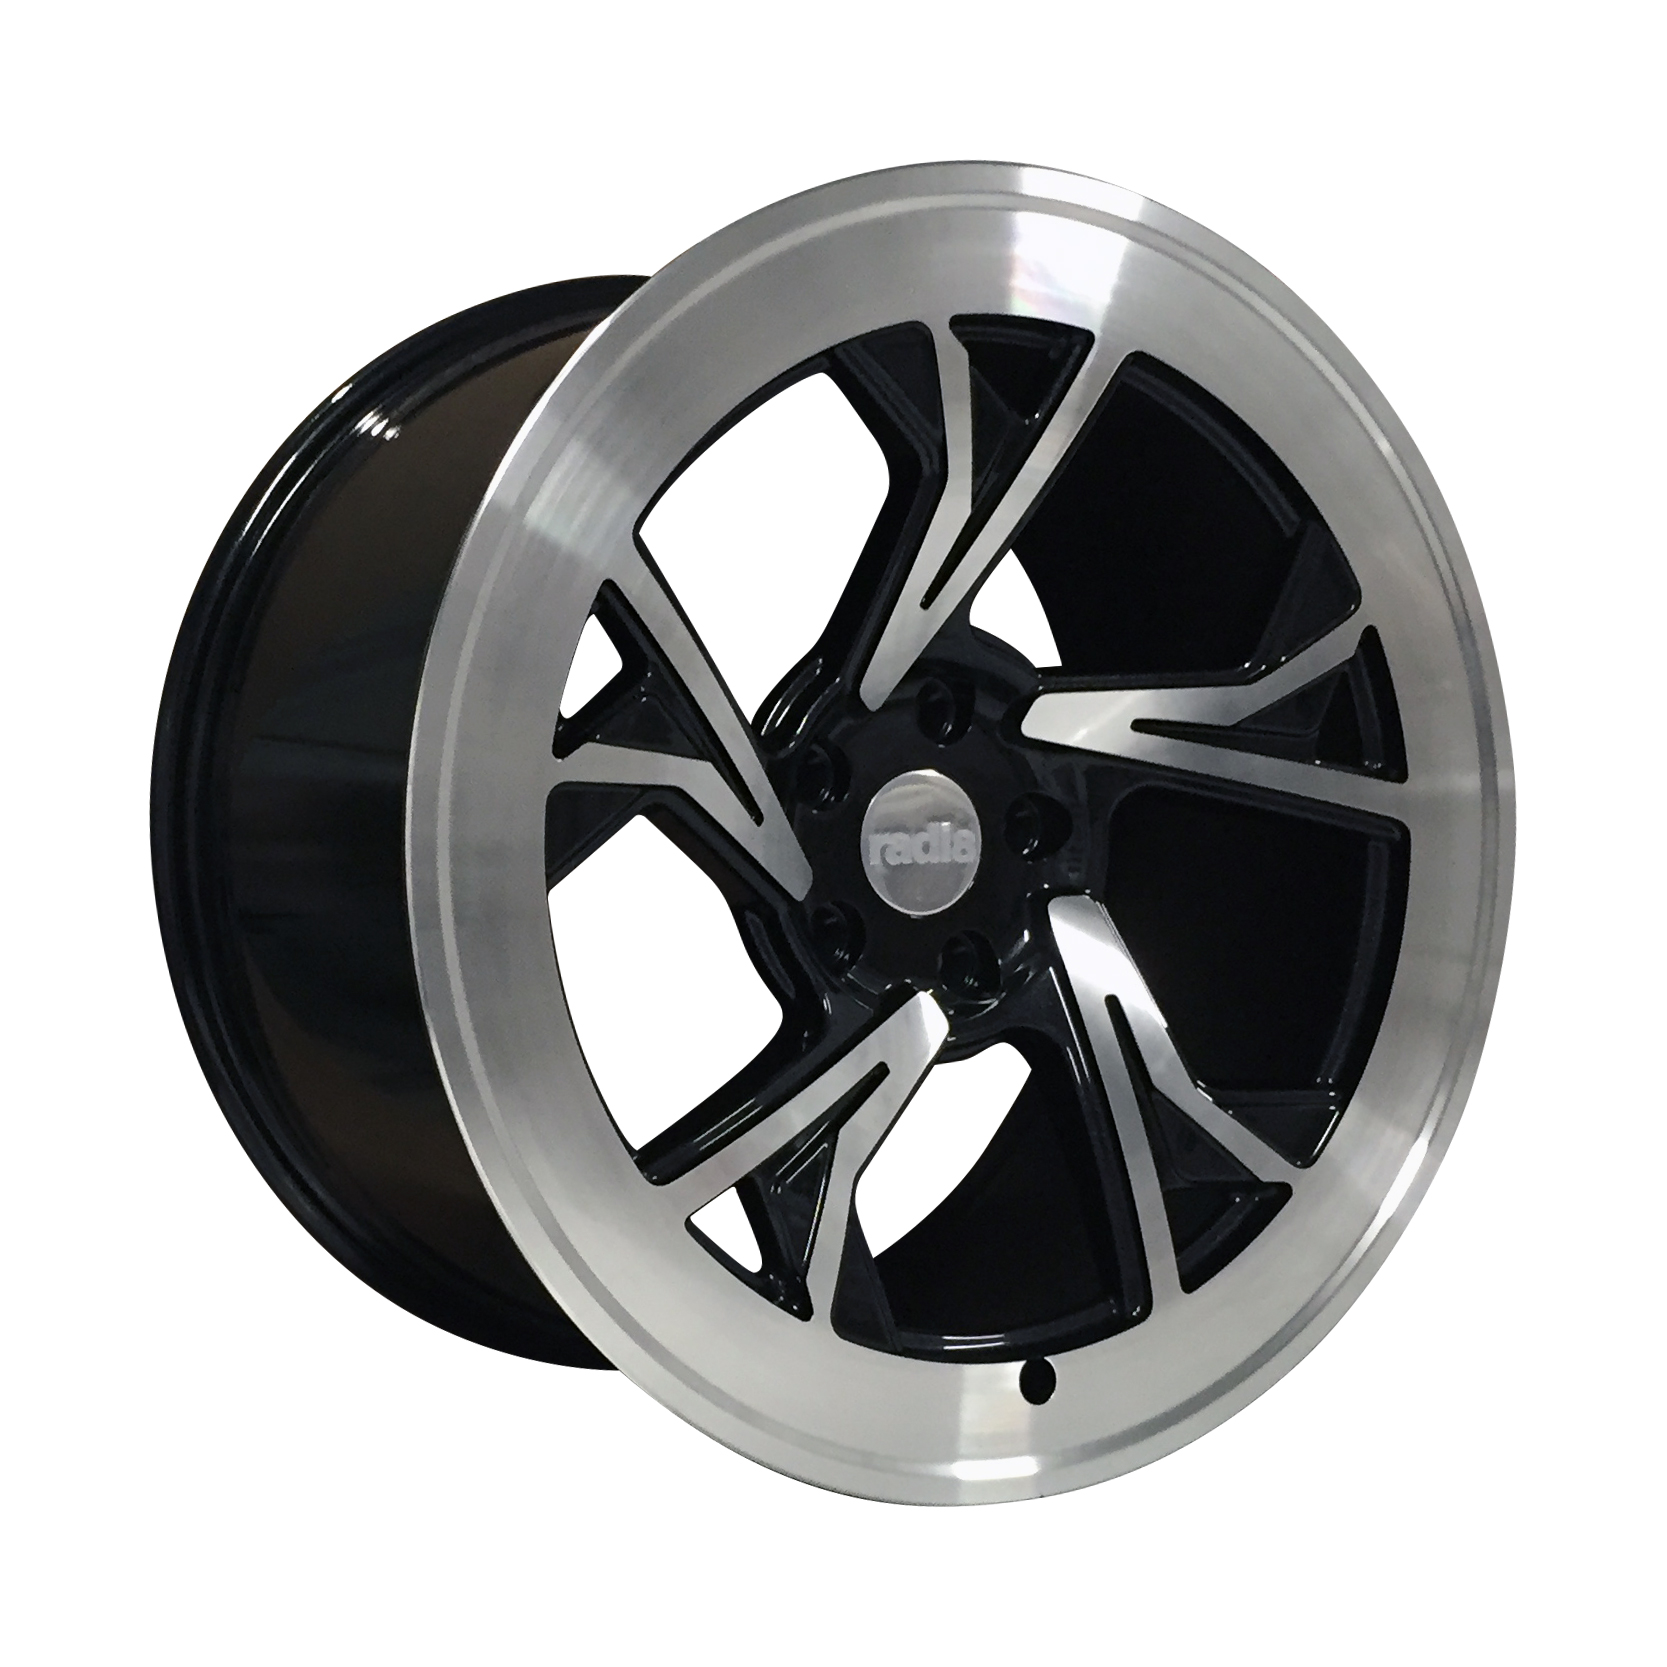 "NEW 18"" RADI8 R8C5 ALLOY WHEELS IN GLOSS BLACK WITH POLISHED FACE"